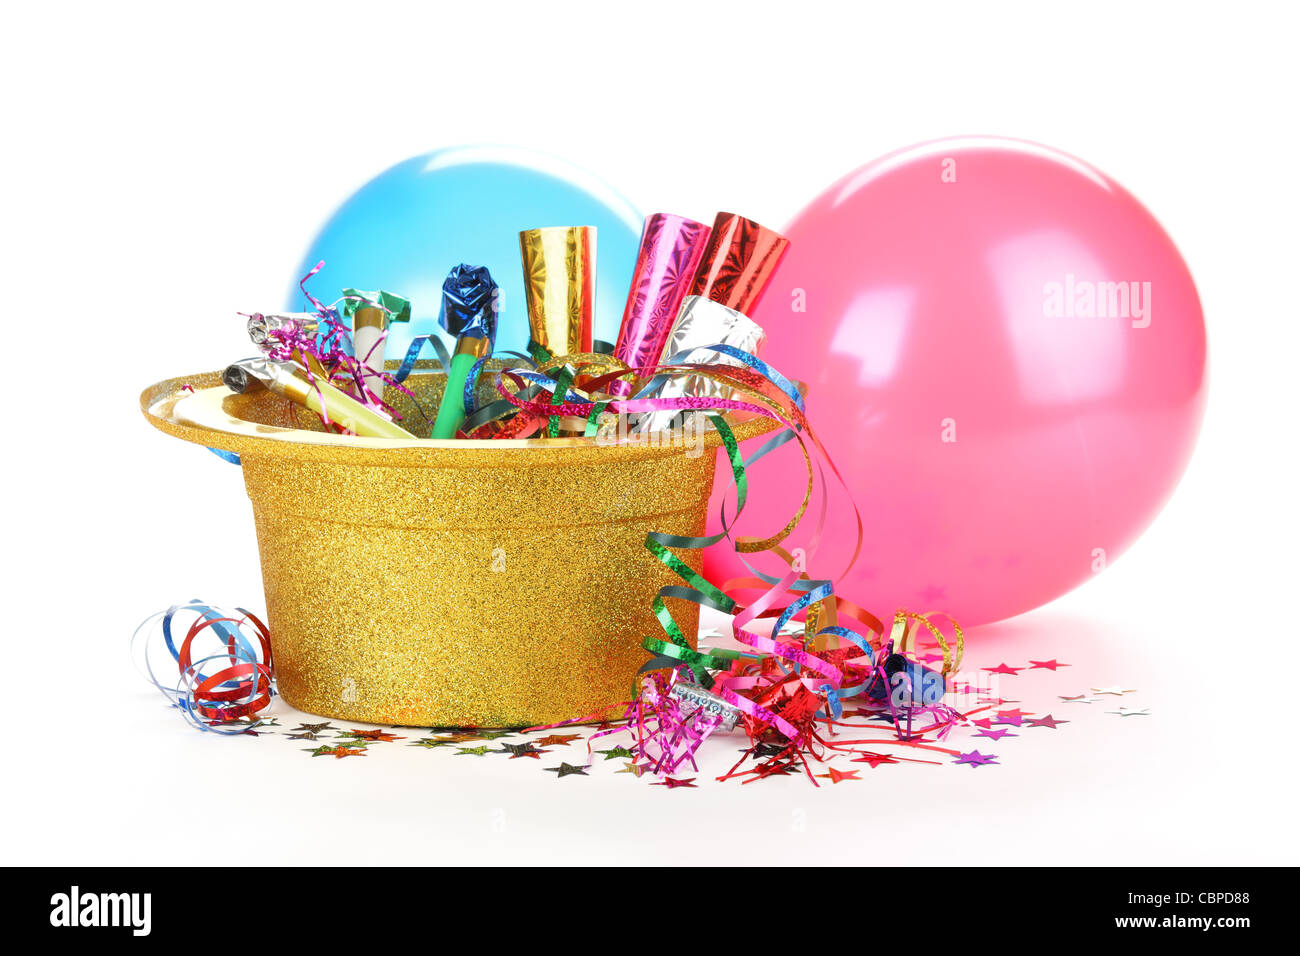 New Year's hat filled with noise makers, streamers and balloons on white background. - Stock Image